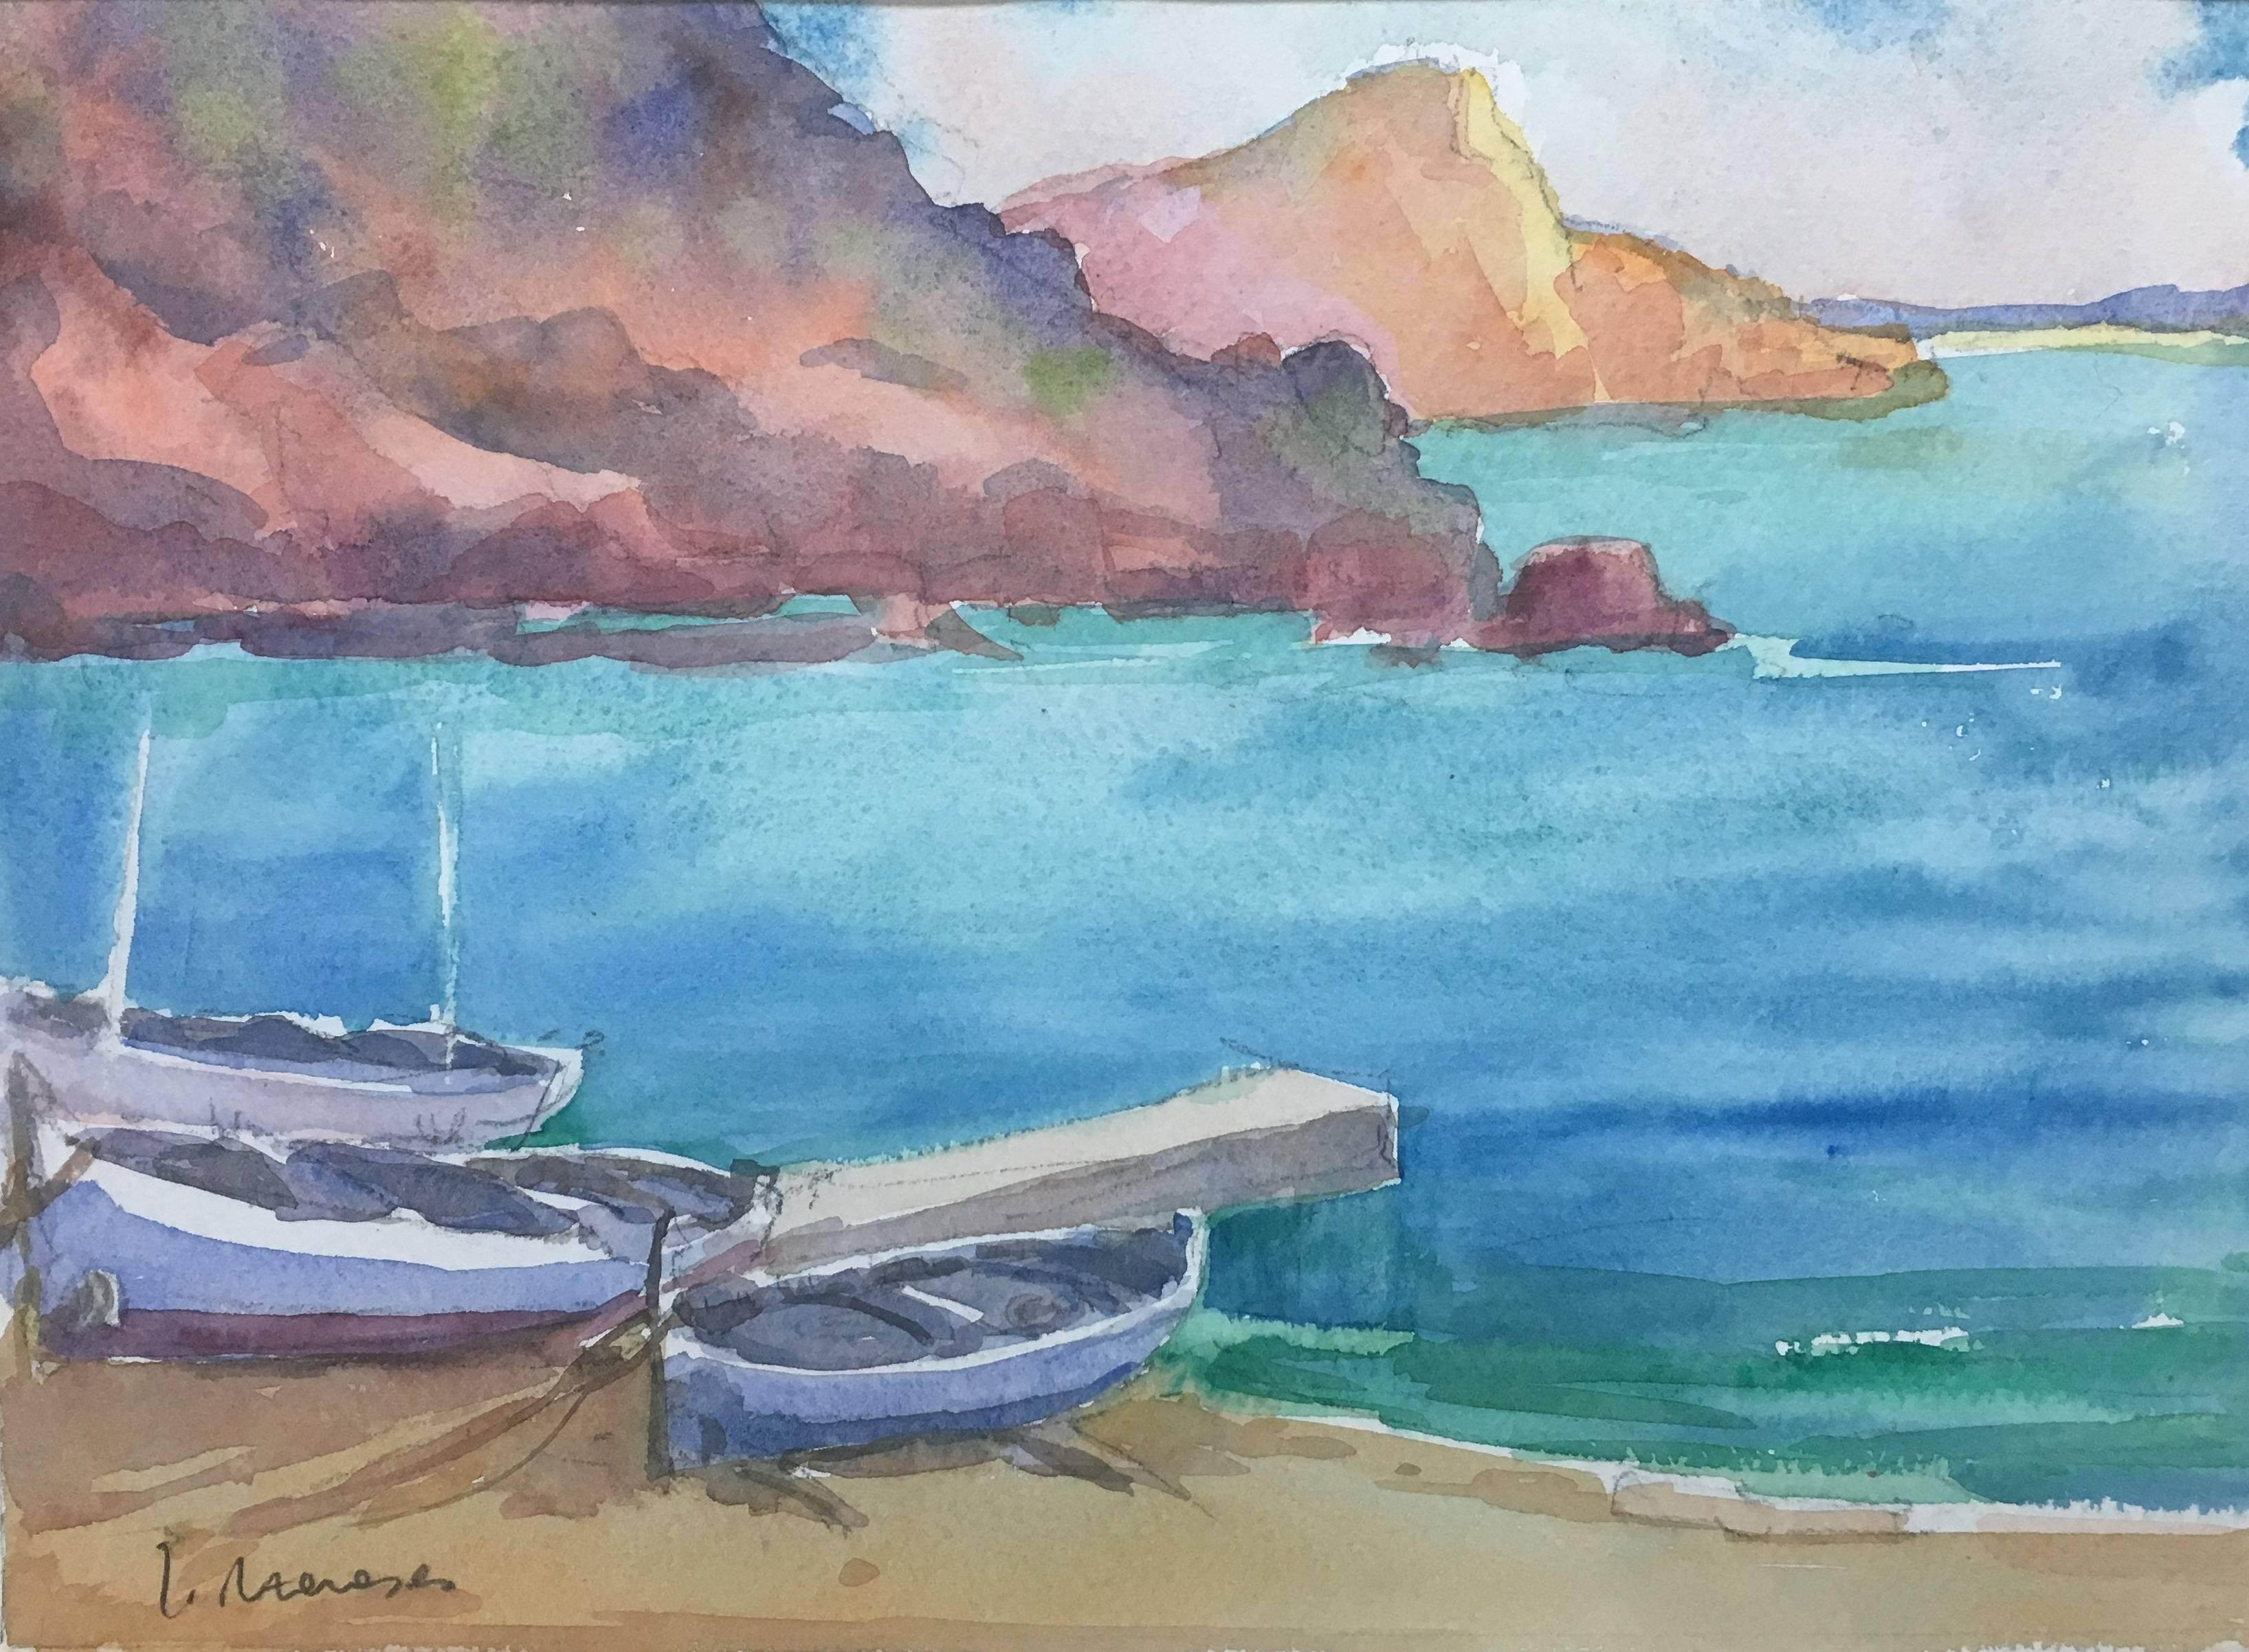 MAJORCA. COAST. SPAIN- original watercolor painting